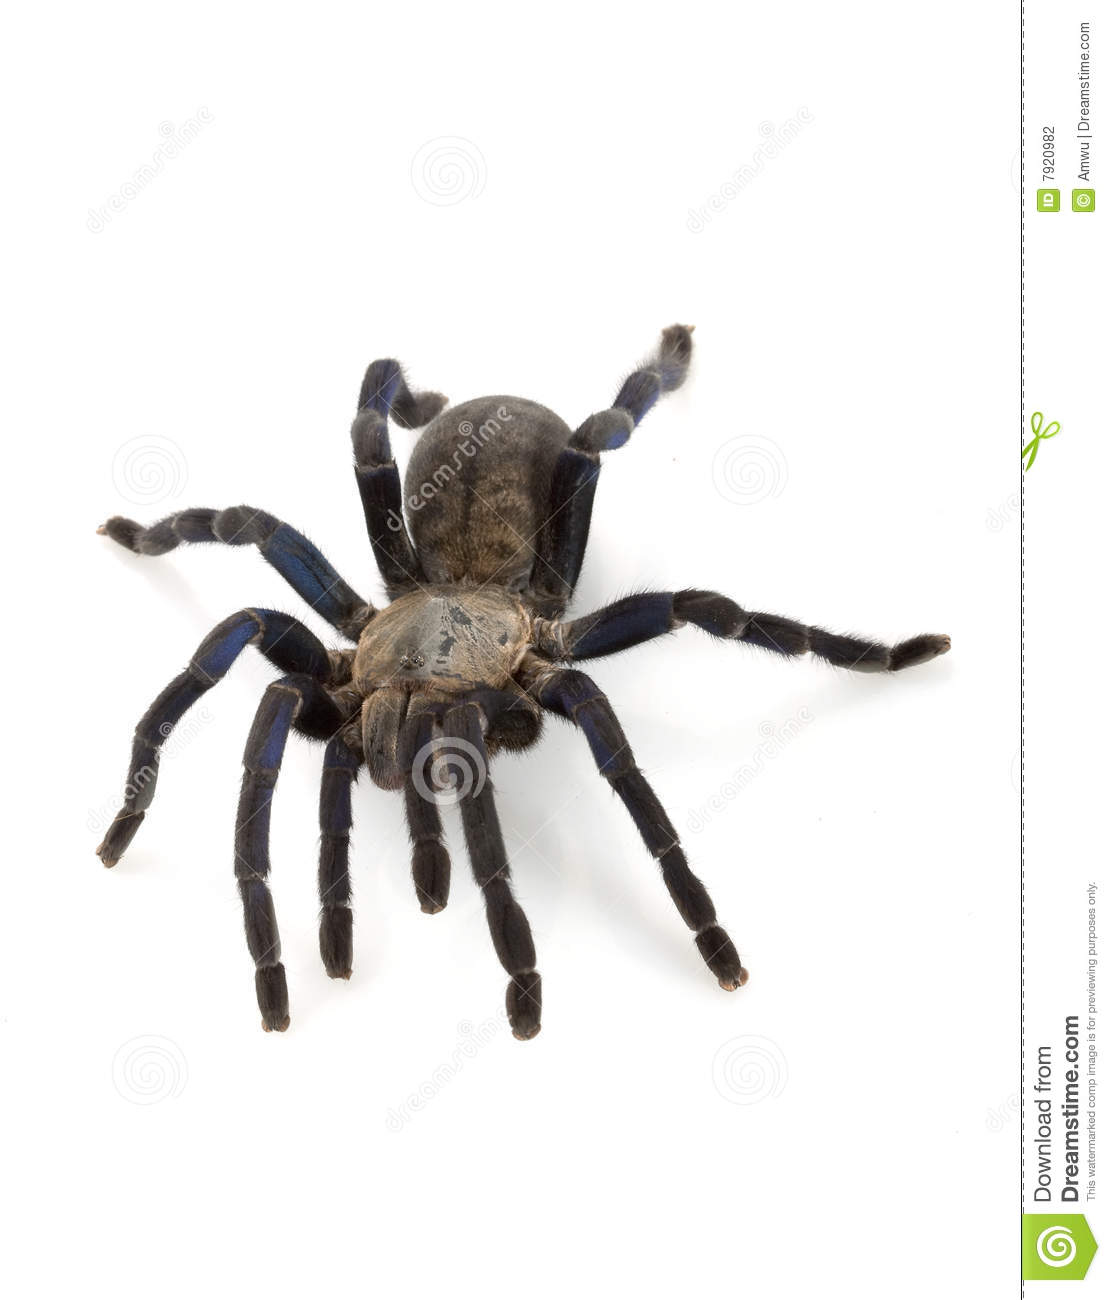 Cobalt Blue Tarantula Stock Photography - Image: 7920982